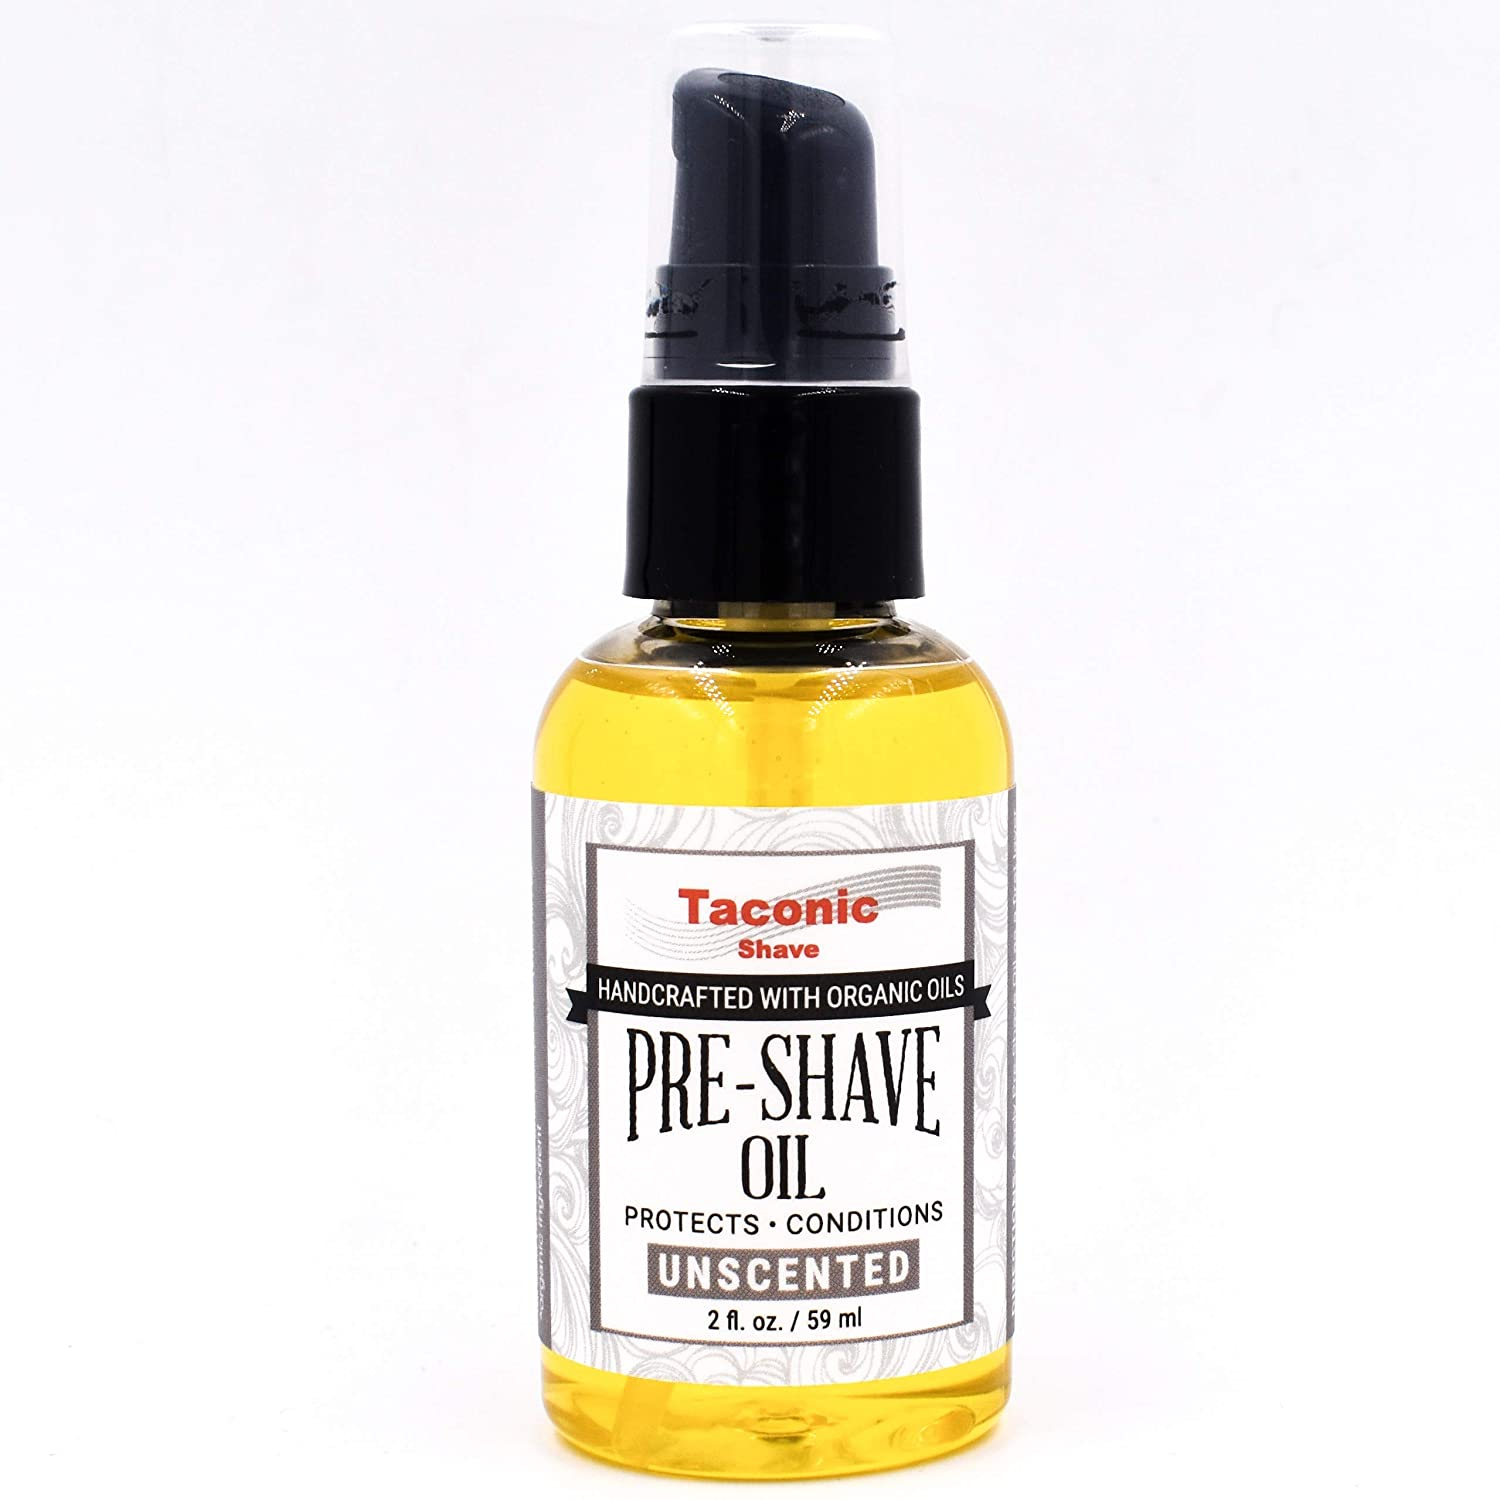 Taconic Shave Premium All Natural Pre-Shave Oil (2 oz.) - Unscented - Made in The USA